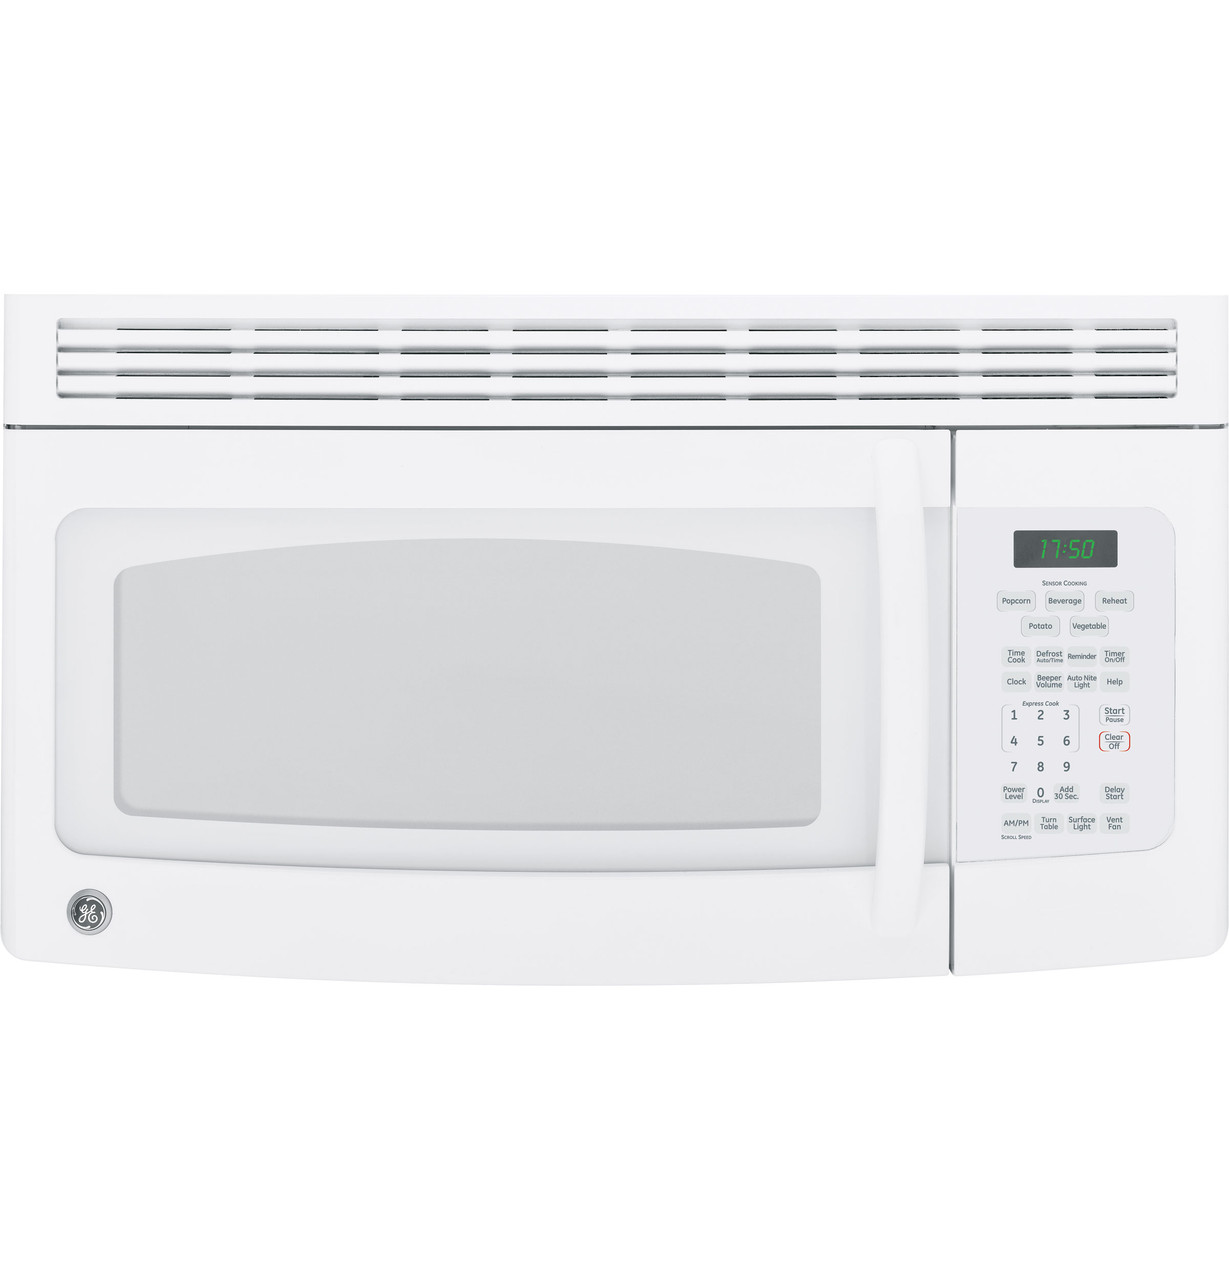 ge spacemaker over the range microwave oven jvm1750dmww